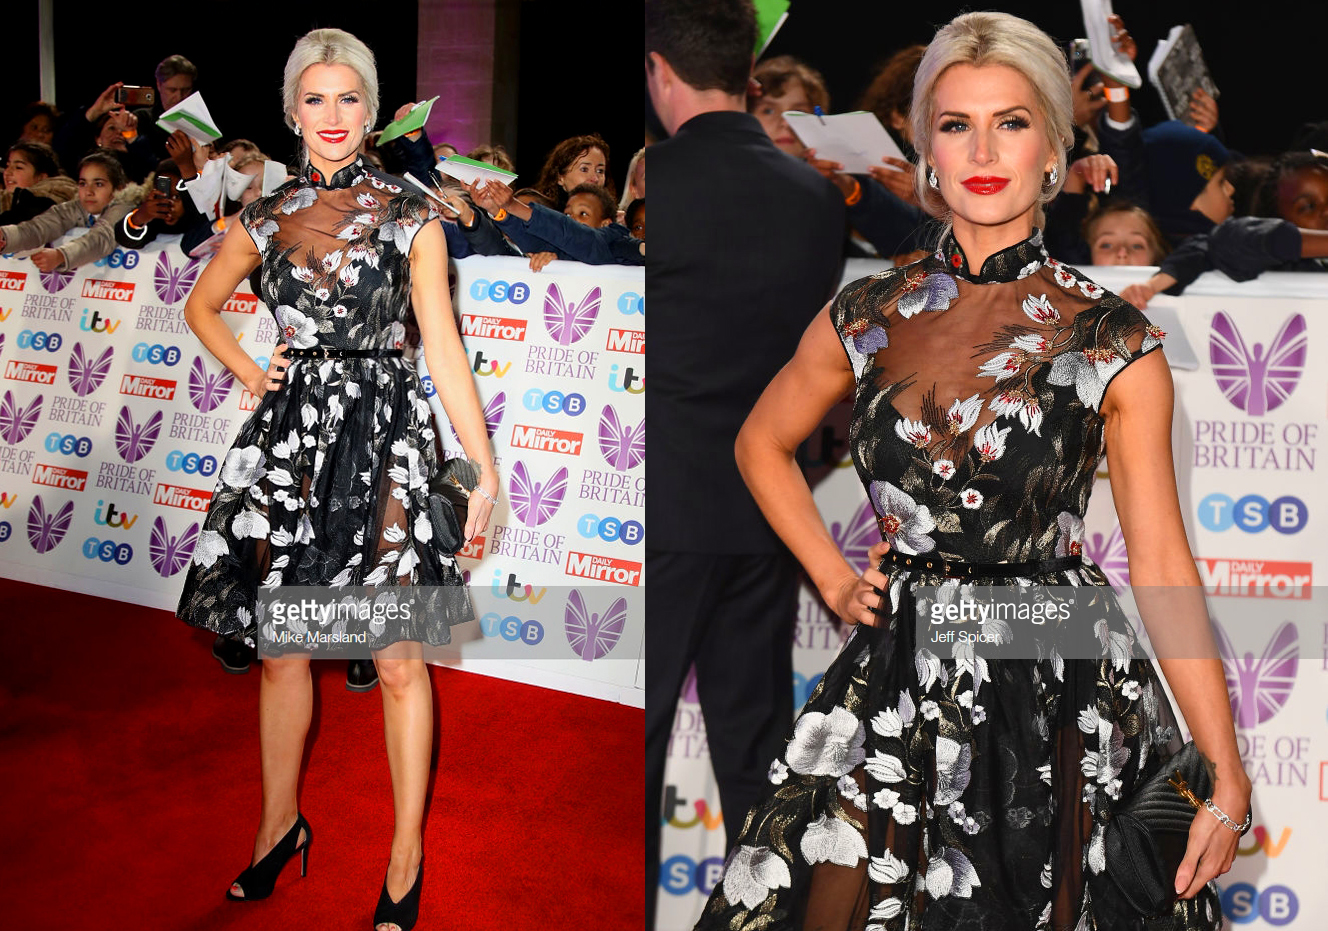 SARAH JAYNE DUNN DRESSED BY RAQUEL BALENCIA FOR PRIDE OF BRITAIN AWARDS 2018